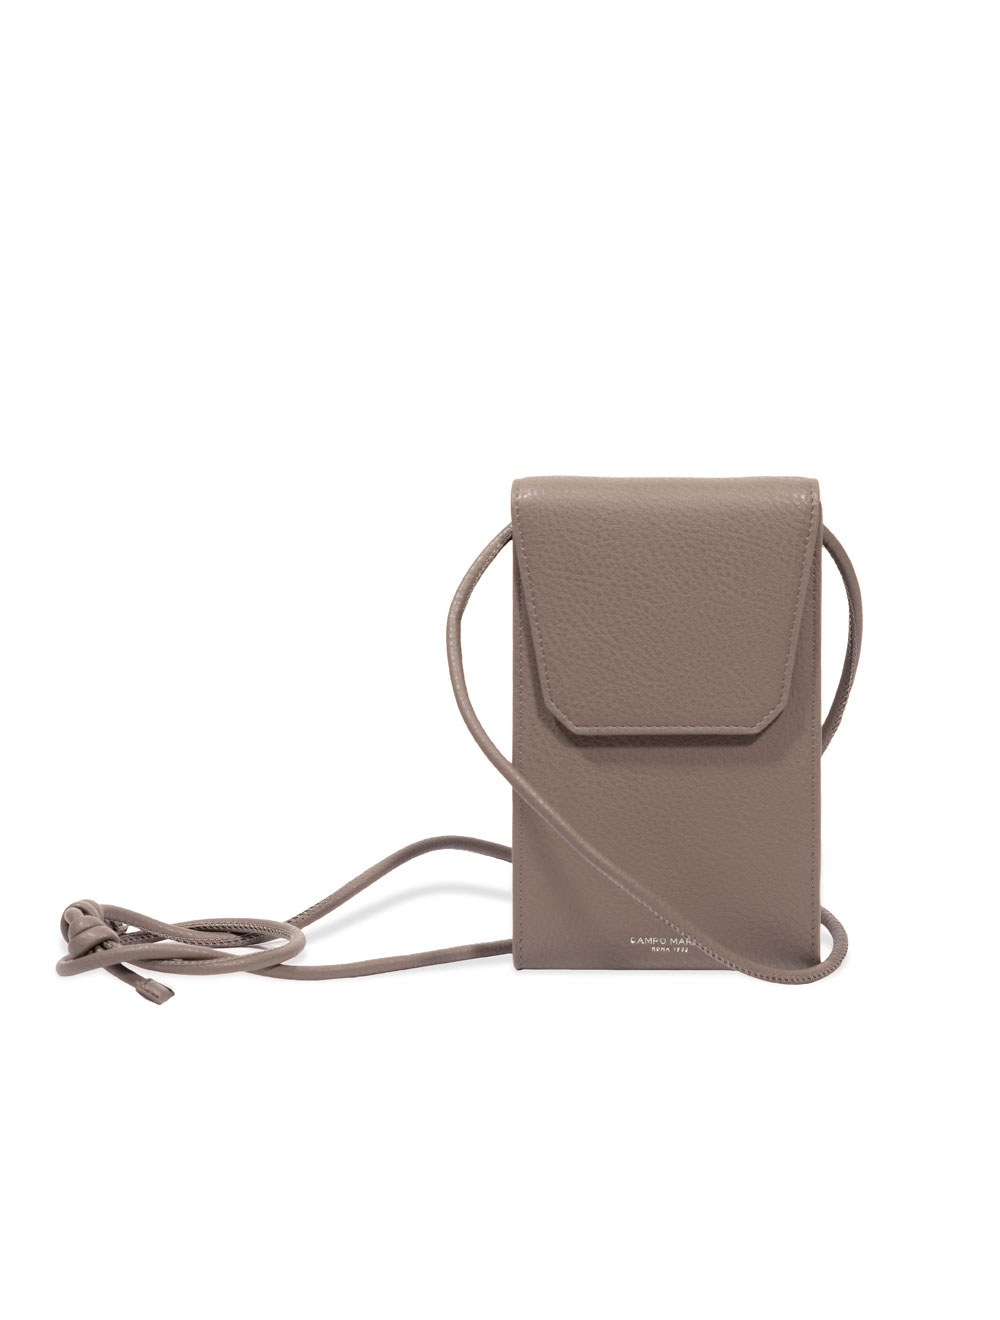 Phone Holder With Crossbody Strap - Taupe